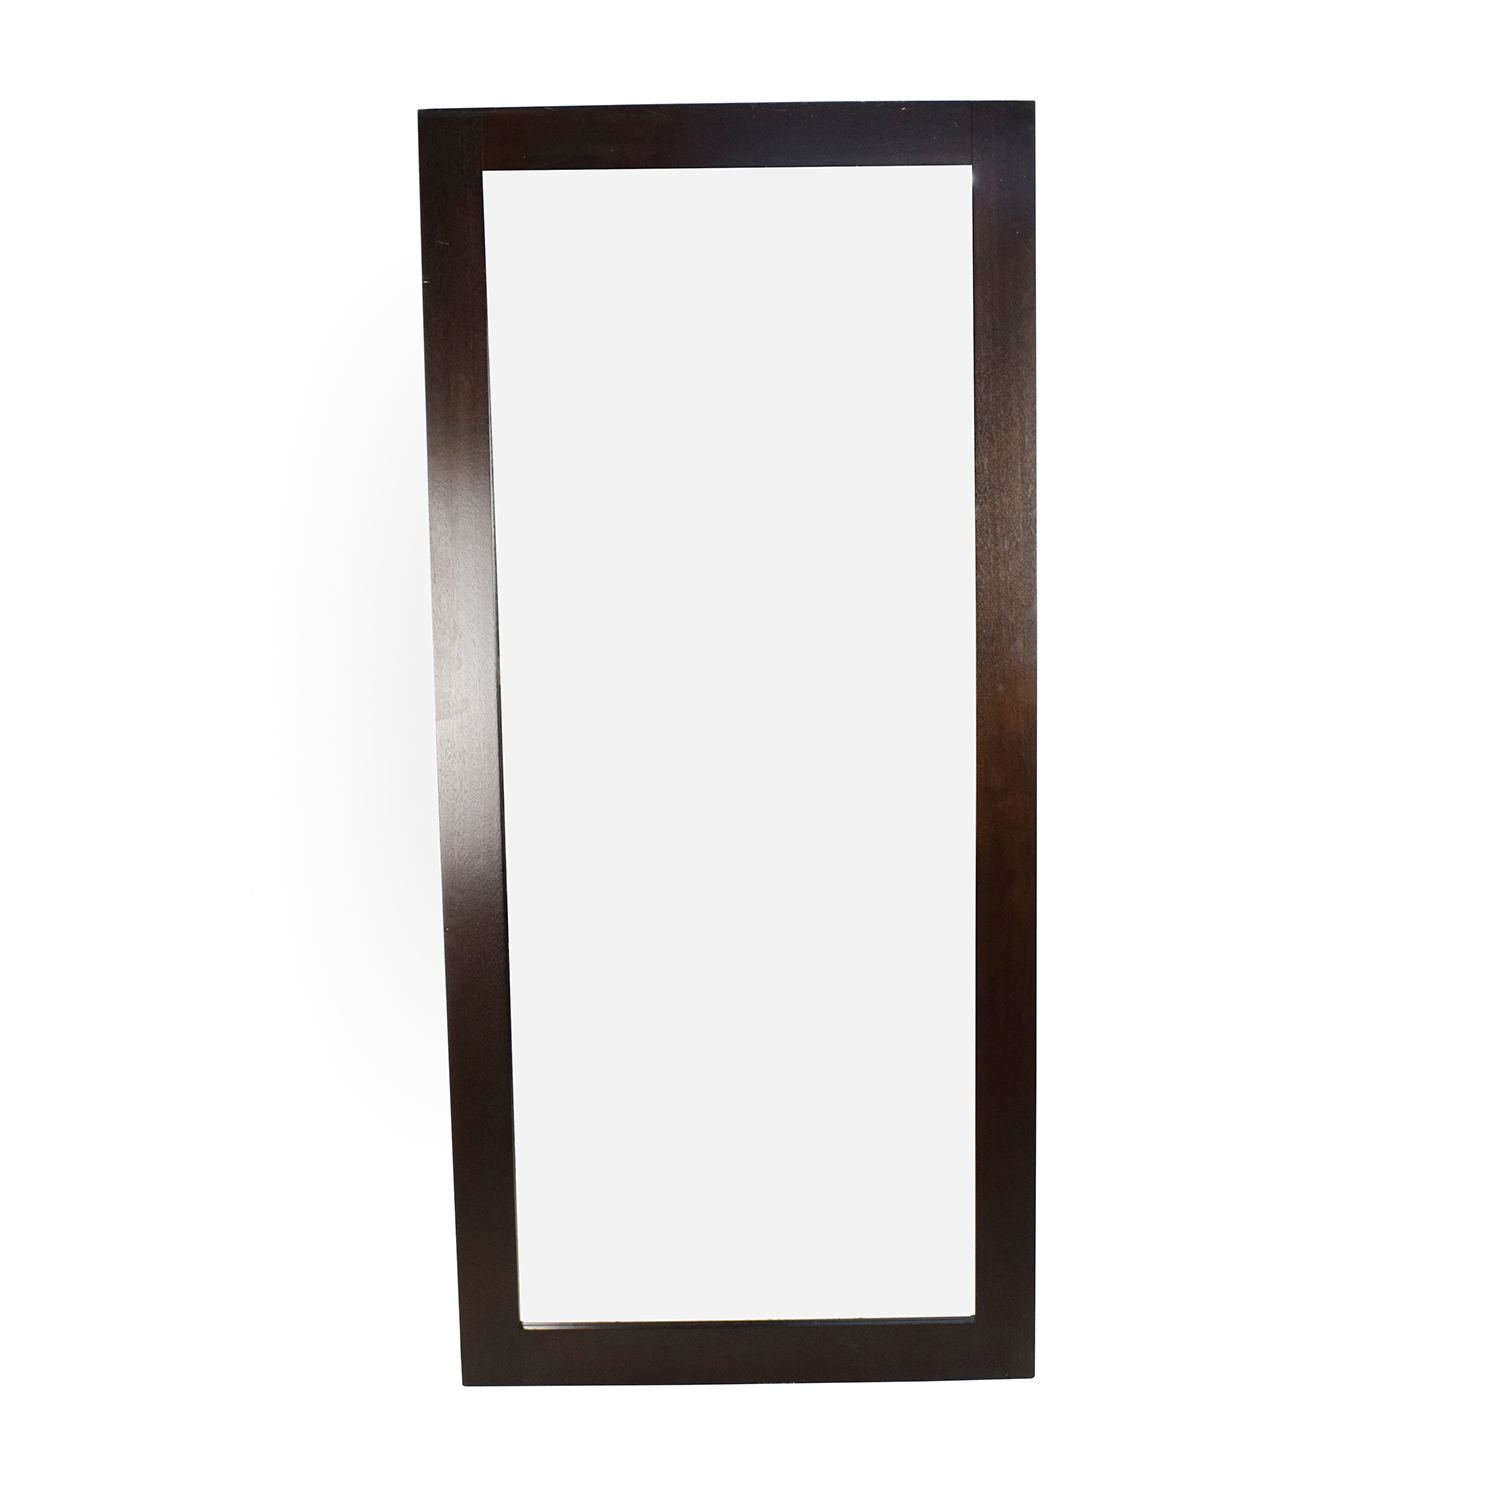 44 off wood framed tall standing mirror decor